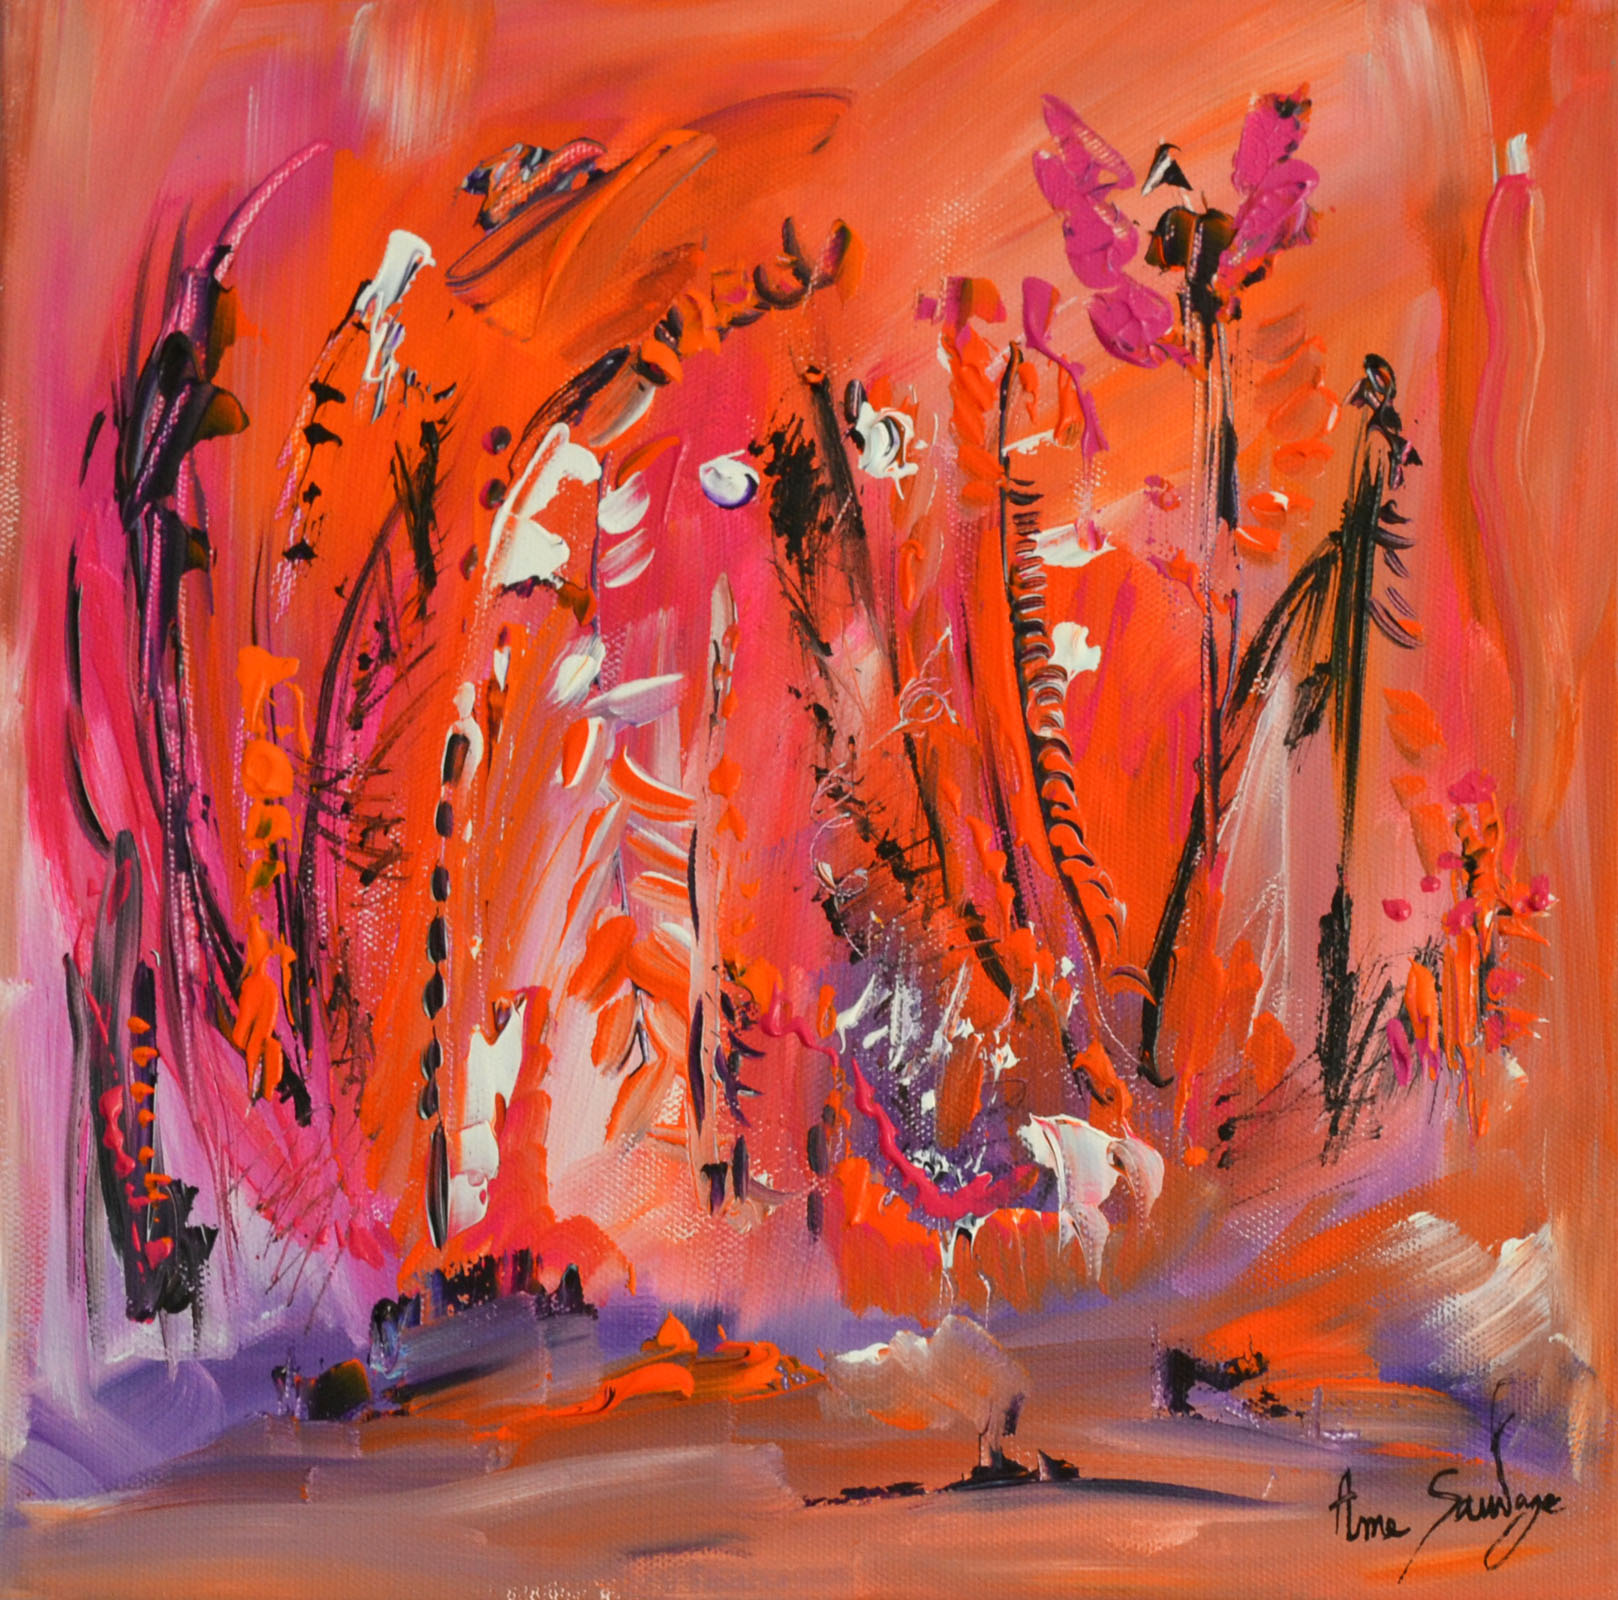 Peinture abstraite contemporaine et moderne orange for Peinture contemporaine abstraite